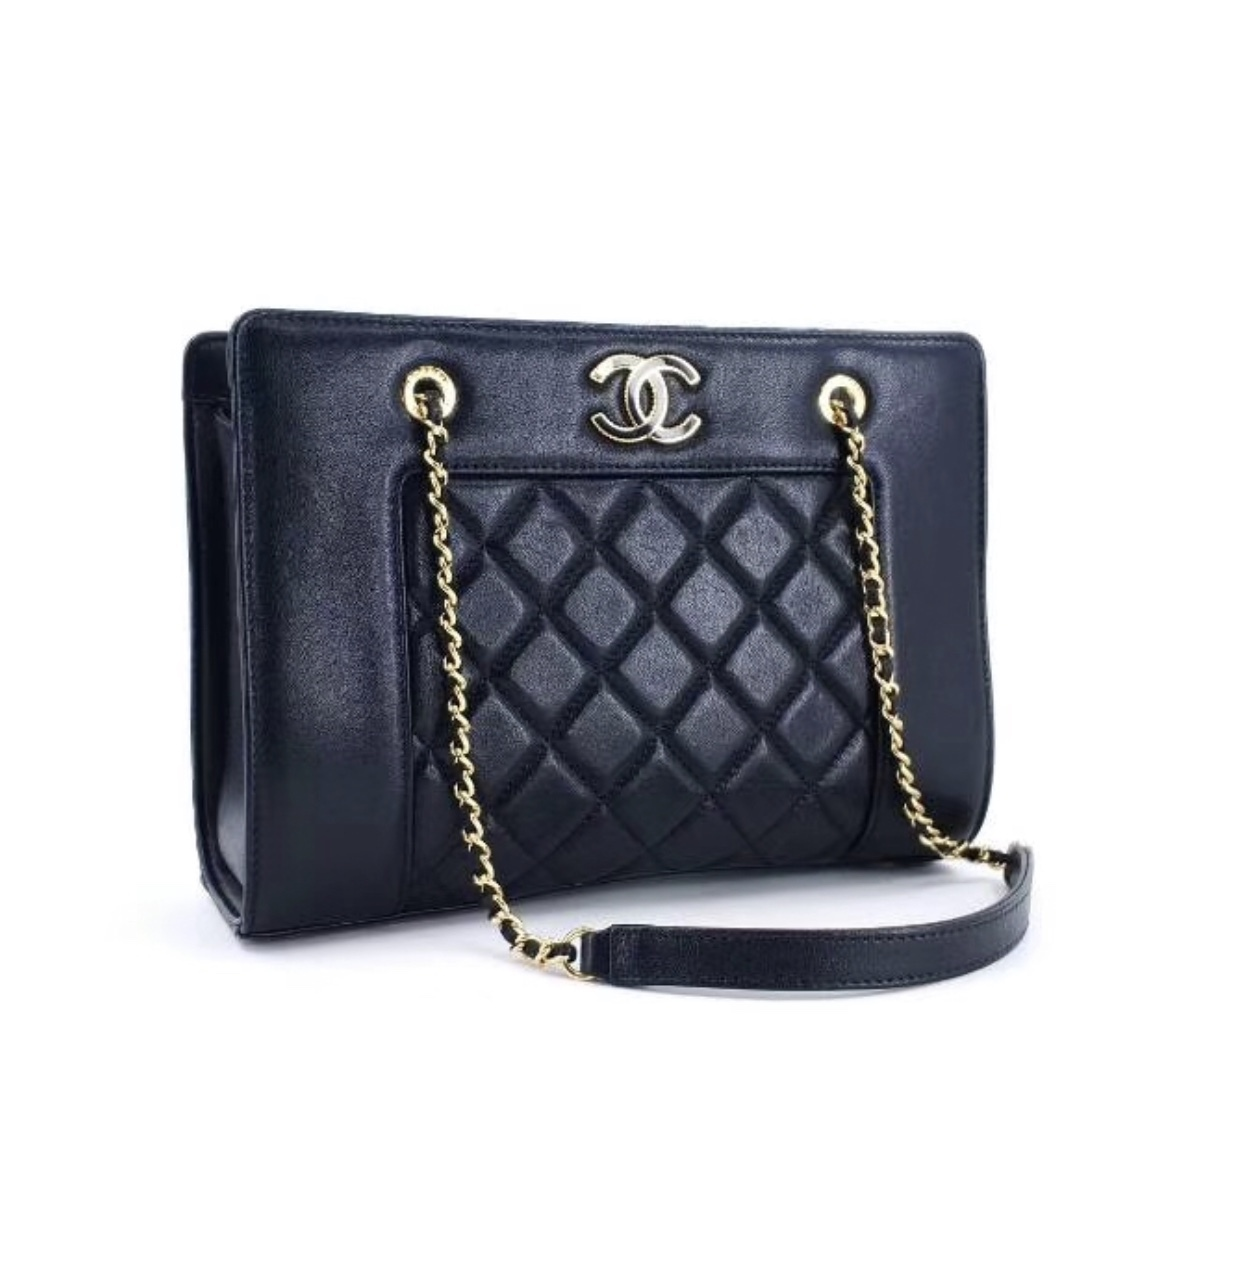 AUTH NEW CHANEL QUILTED LEATHER BLACK SHOPPER TOTE BAG GHW RECEIPT